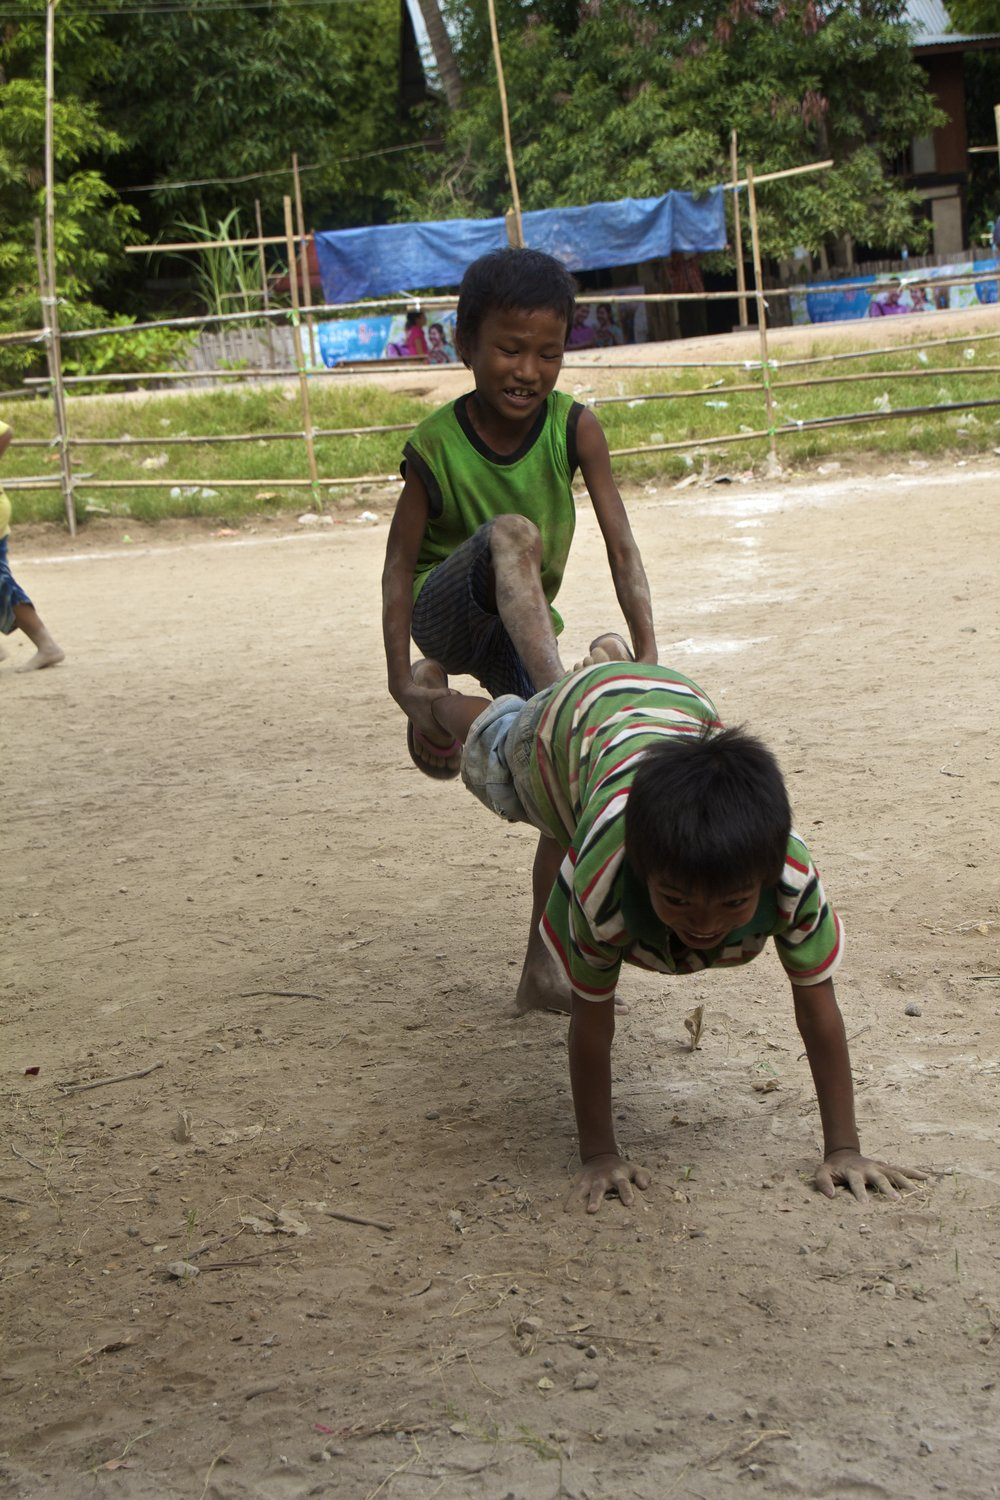 bagan burma myanmar burmese children soccer football 12.jpg